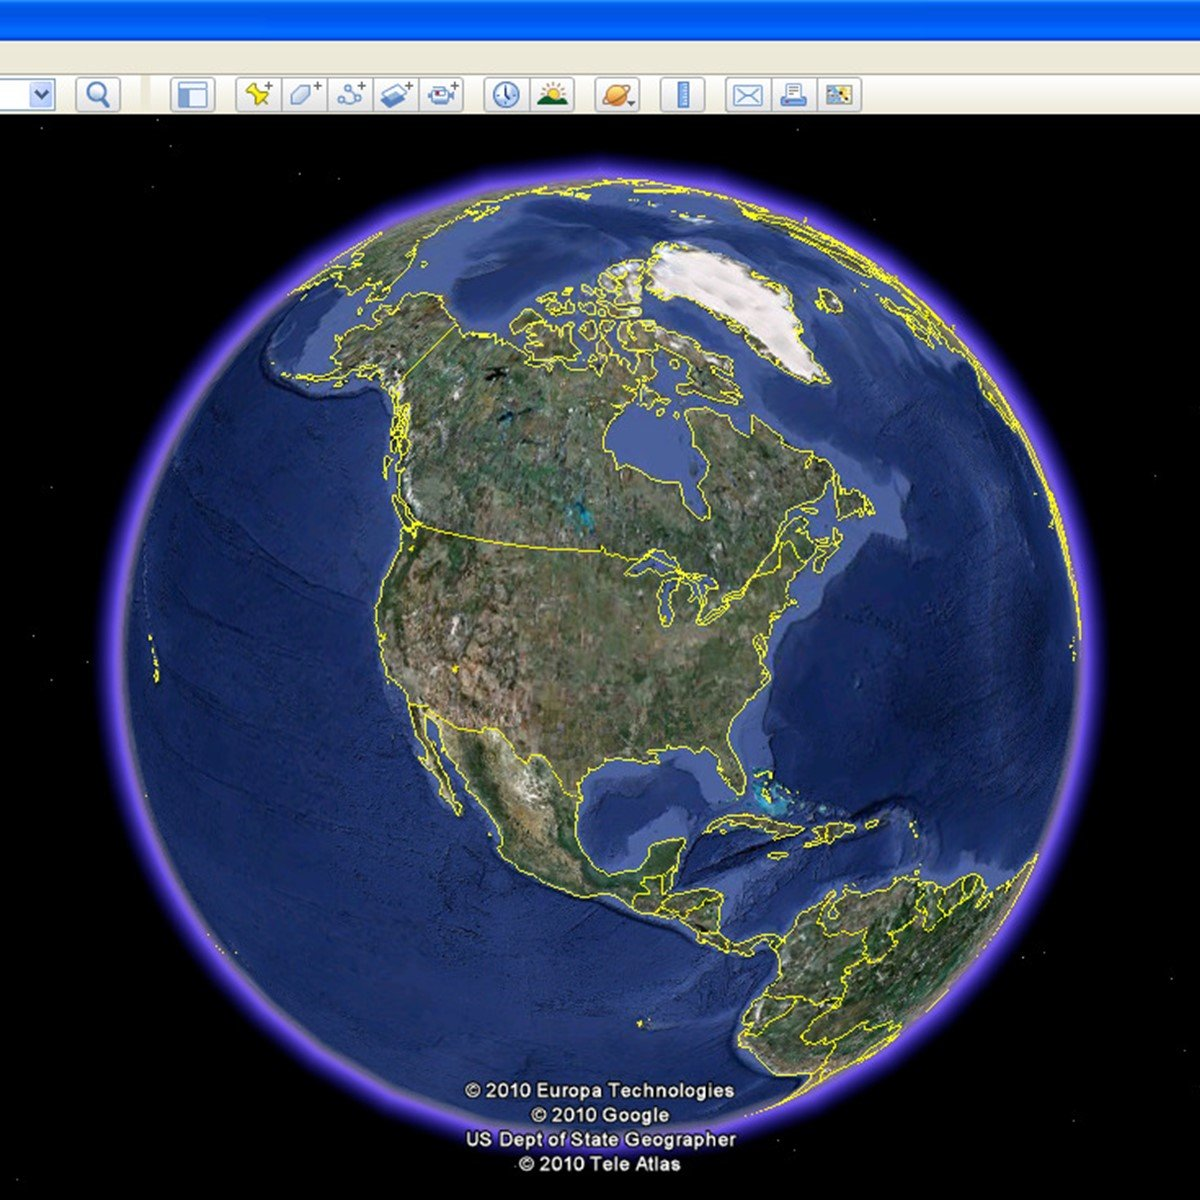 google earth pro latest version 2017 free download